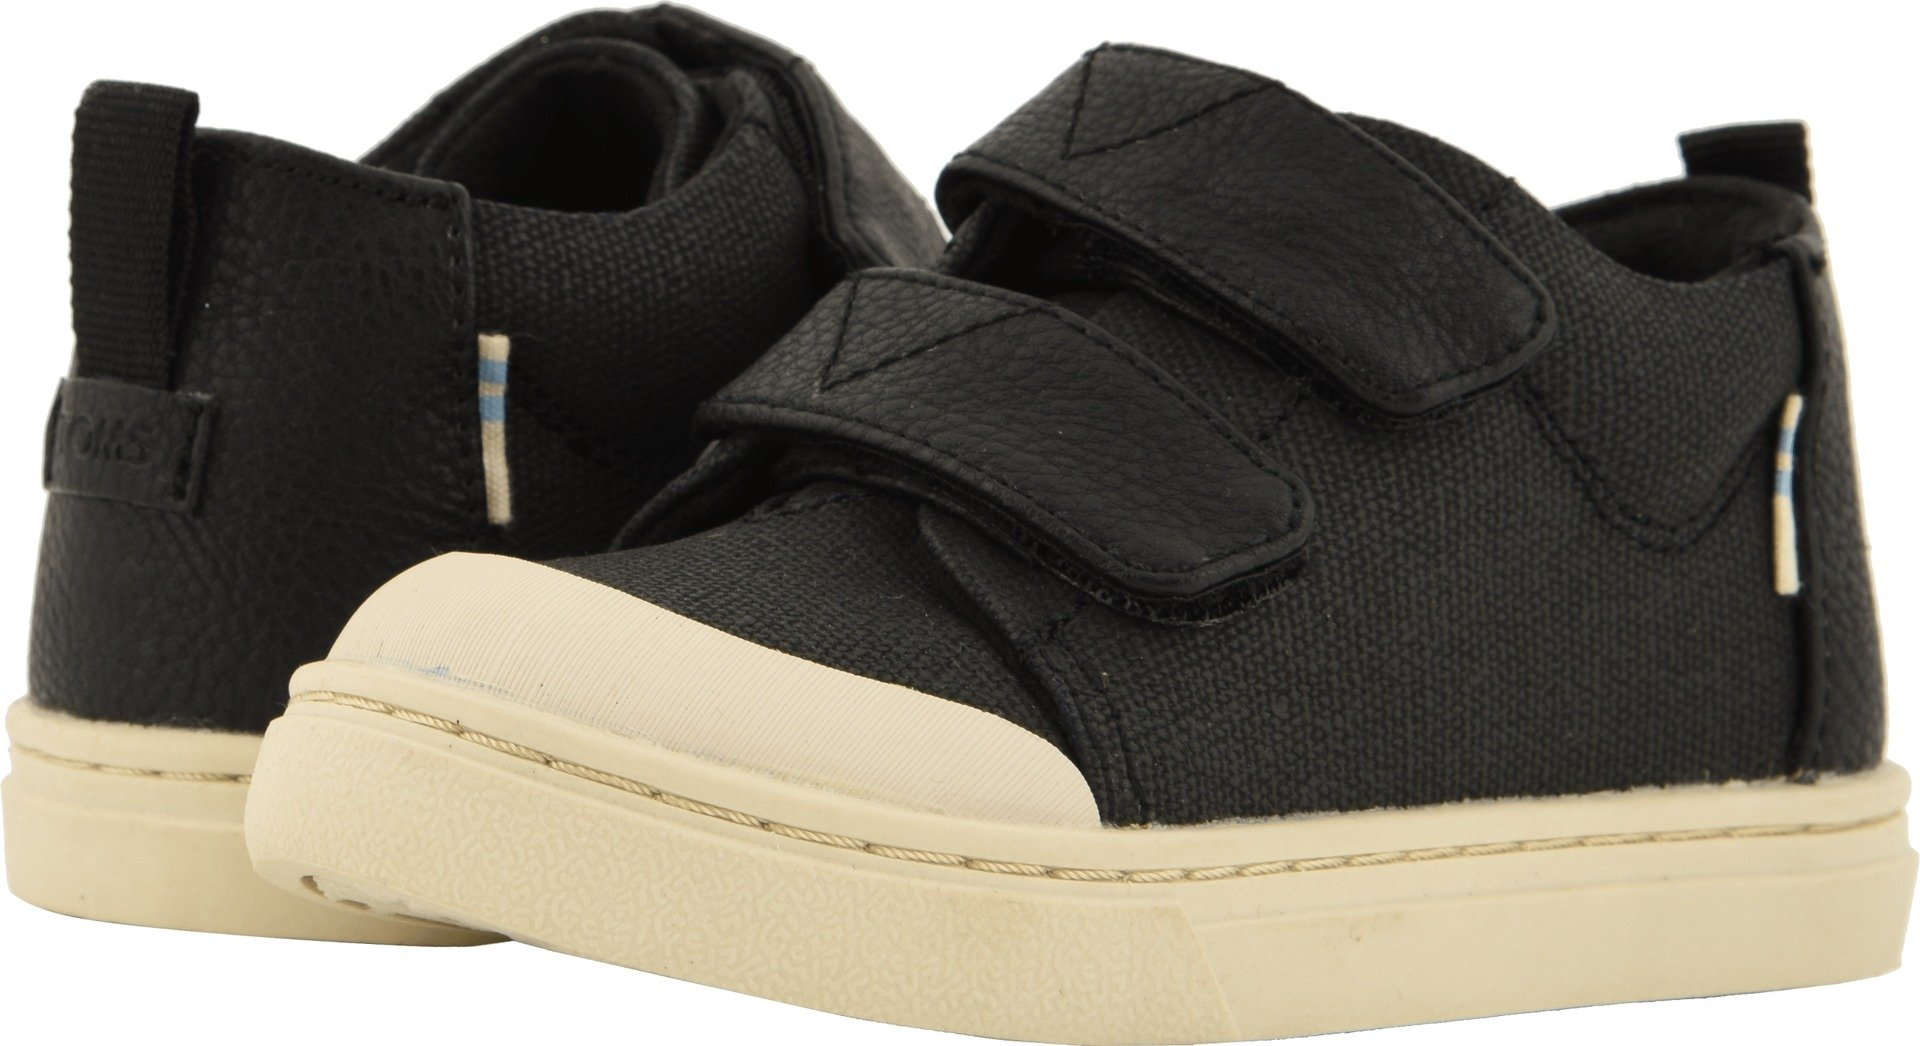 TOMS Tiny Lenny Mid Cotton Sneaker, Size: 4 M US Toddler, Color: Black Textural